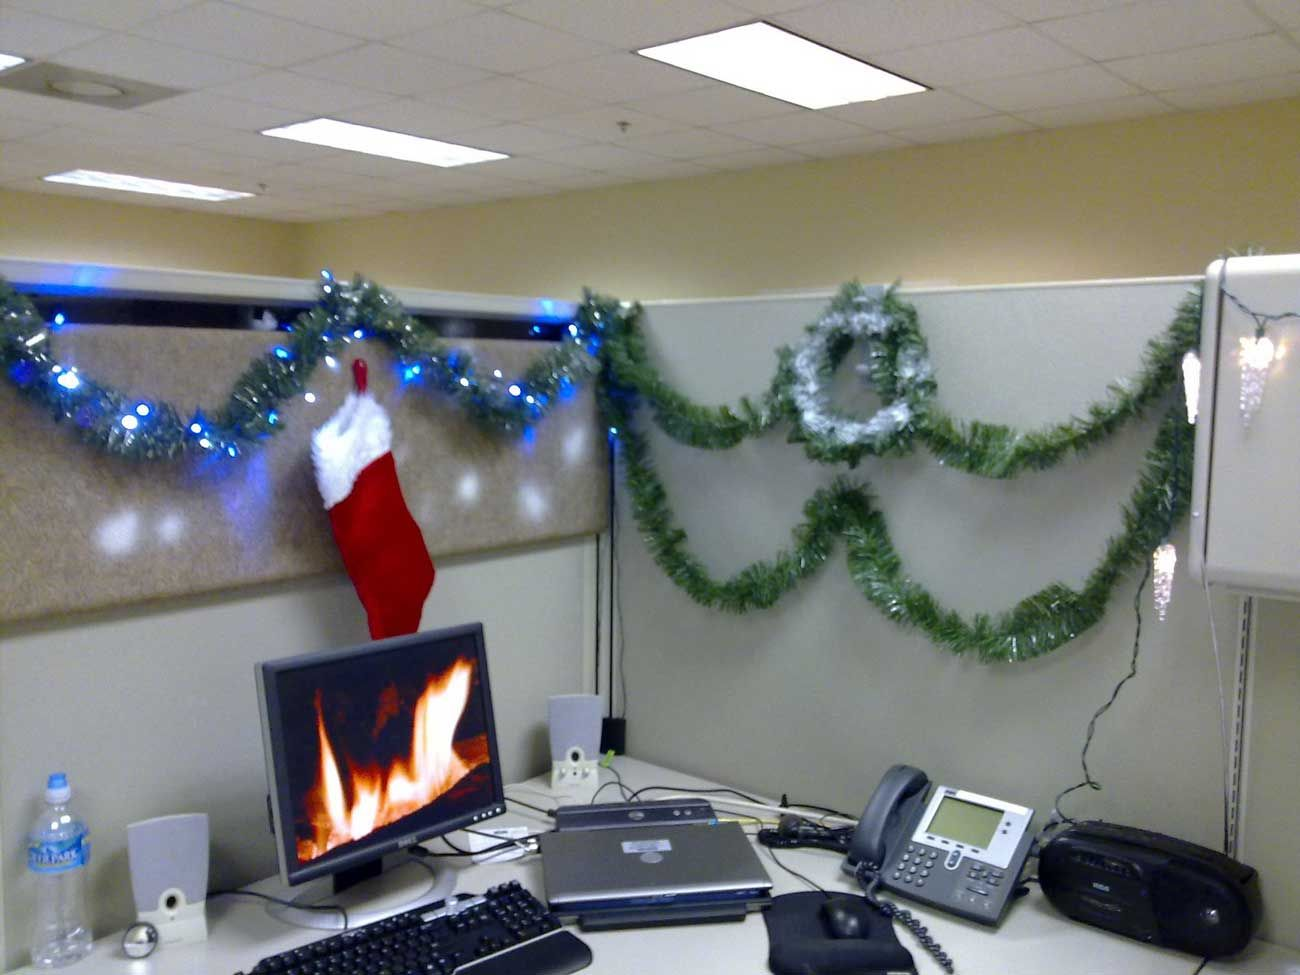 fire background for the computer holidaychristmas cubicle decoration office decorations christmas